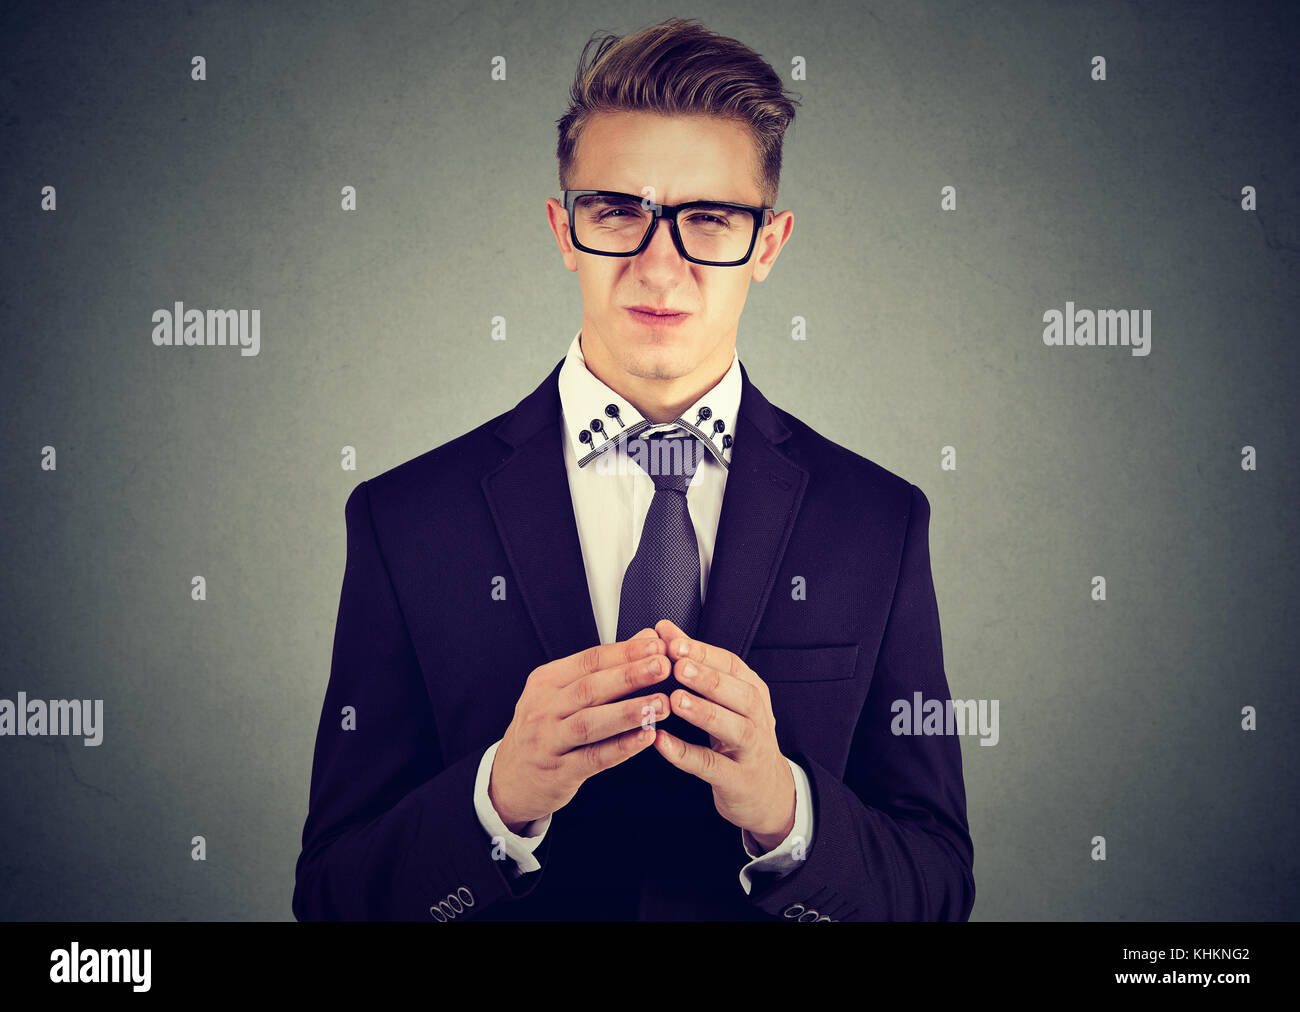 Sly business man in glasses looking at camera - Stock Image